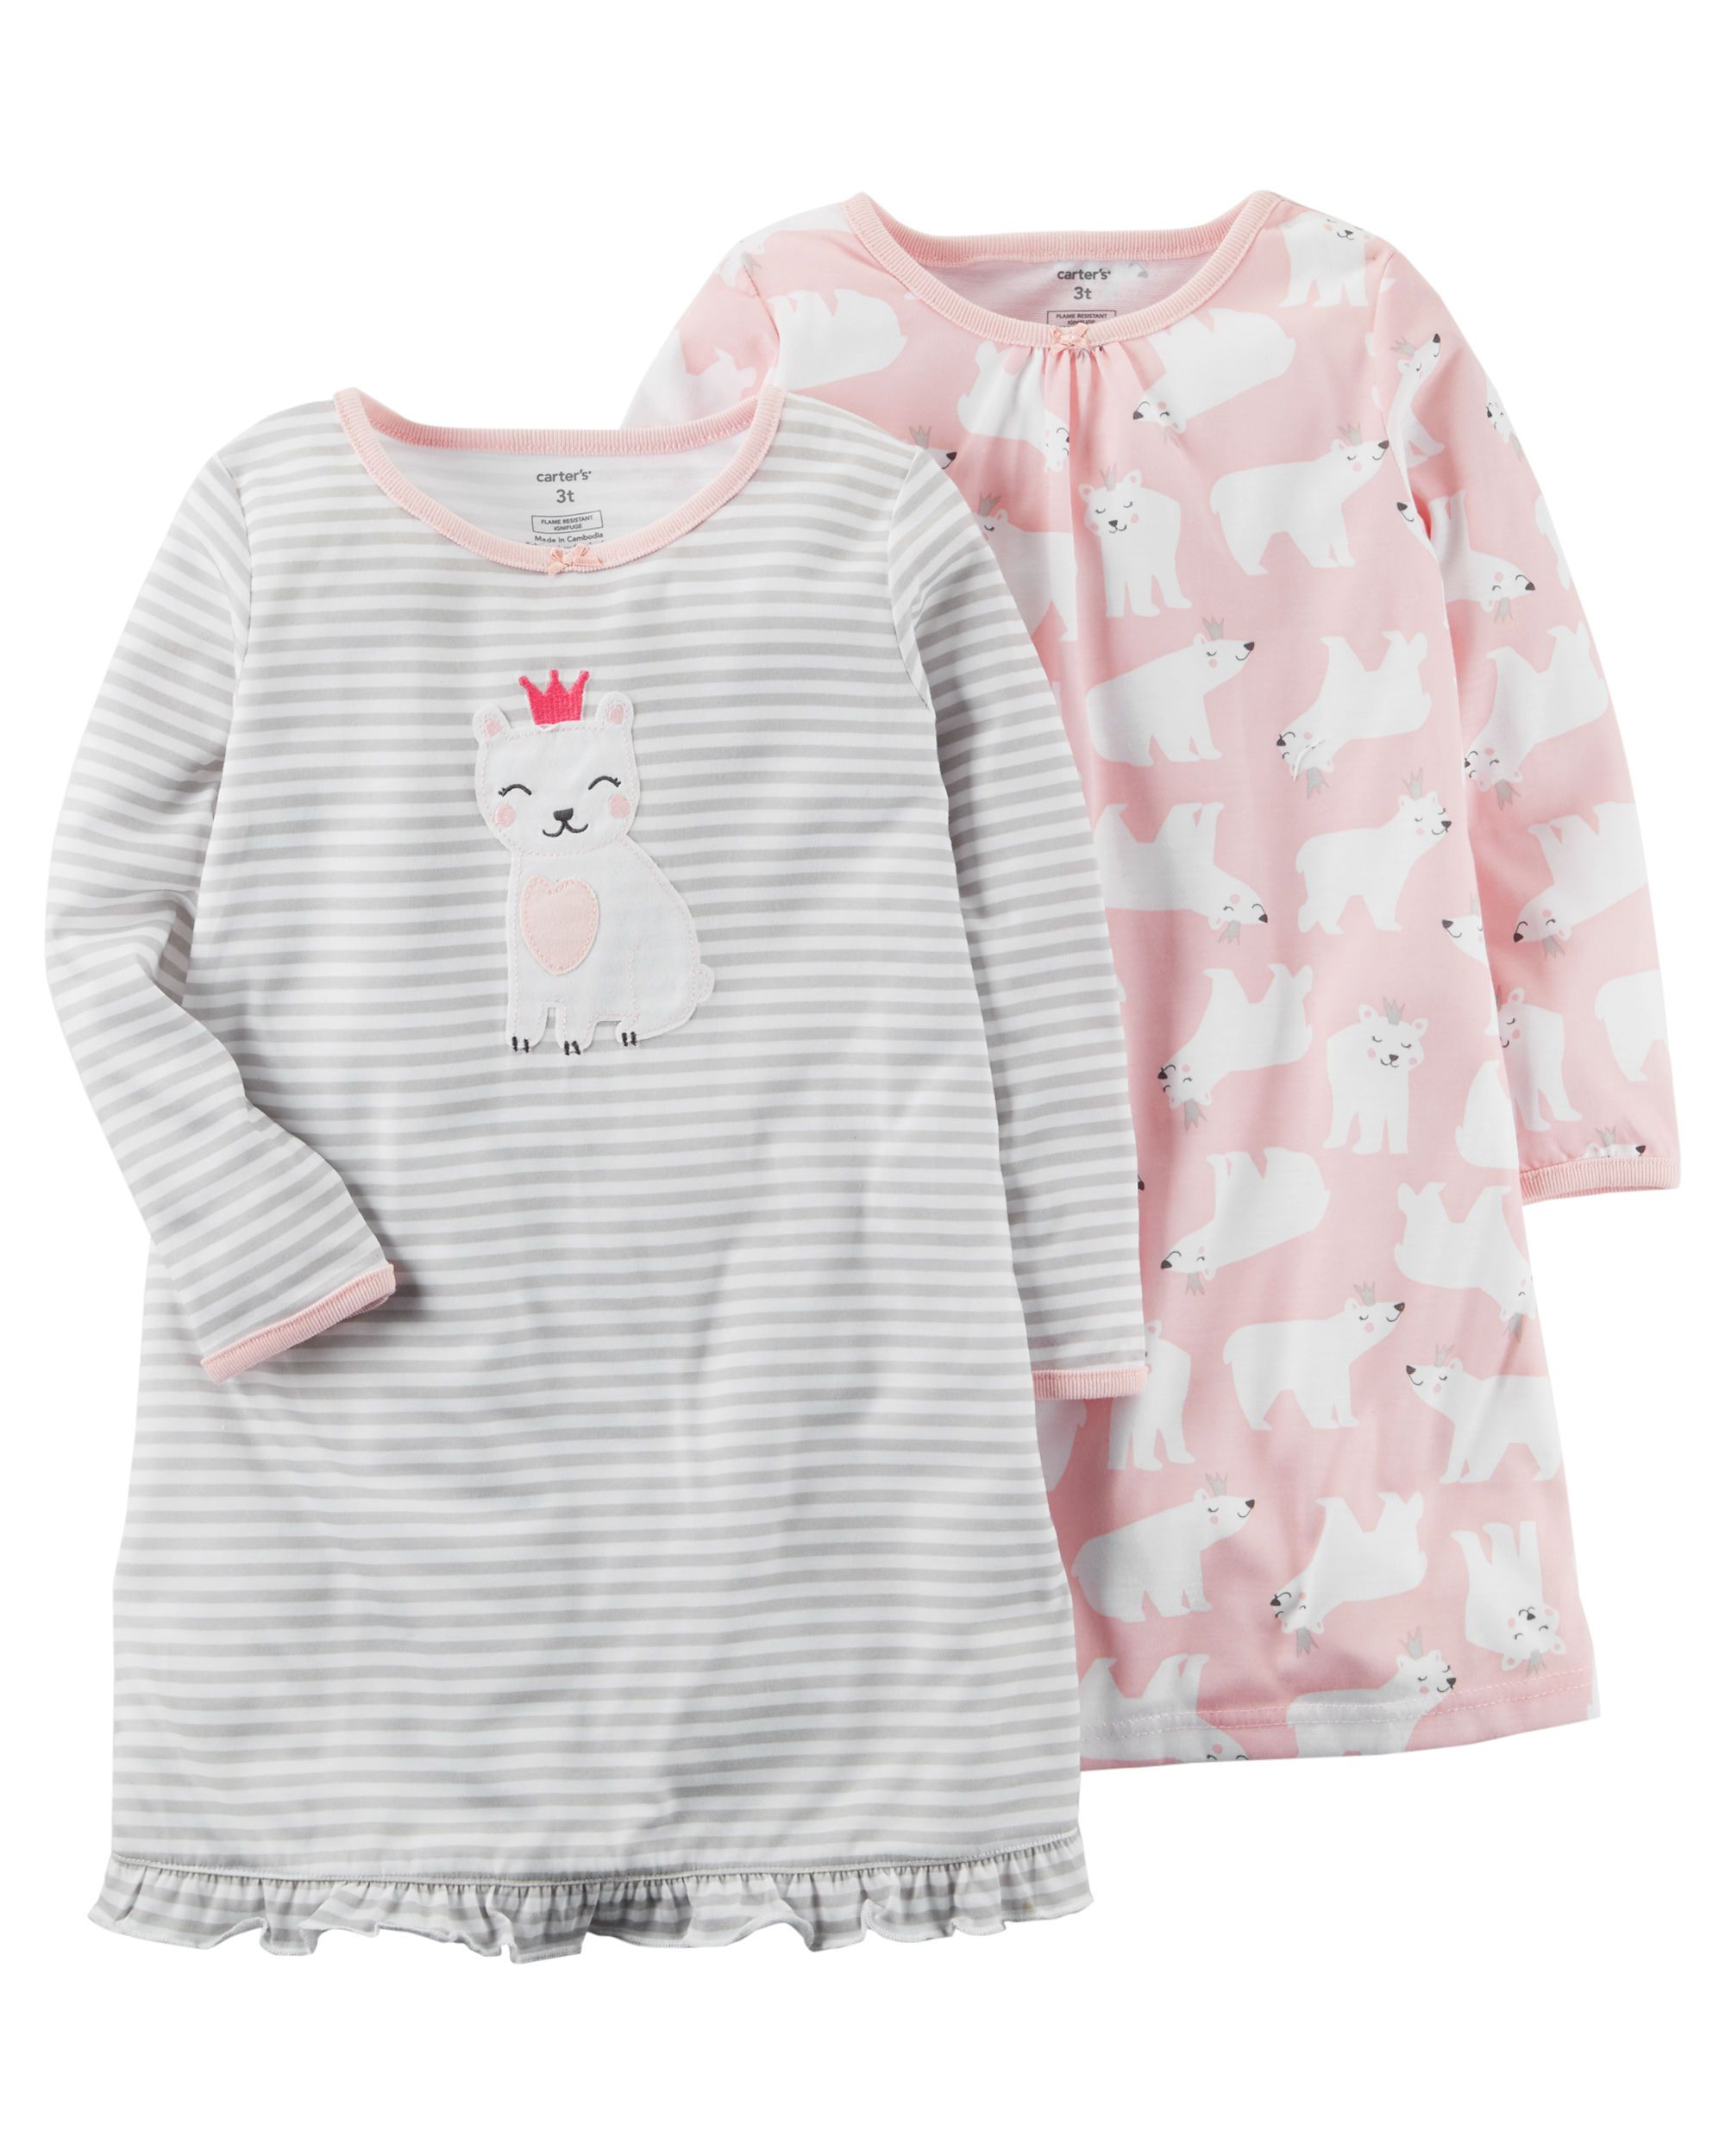 Pin By Morganmichelle On Chels Pinterest Baby Girl Pajamas